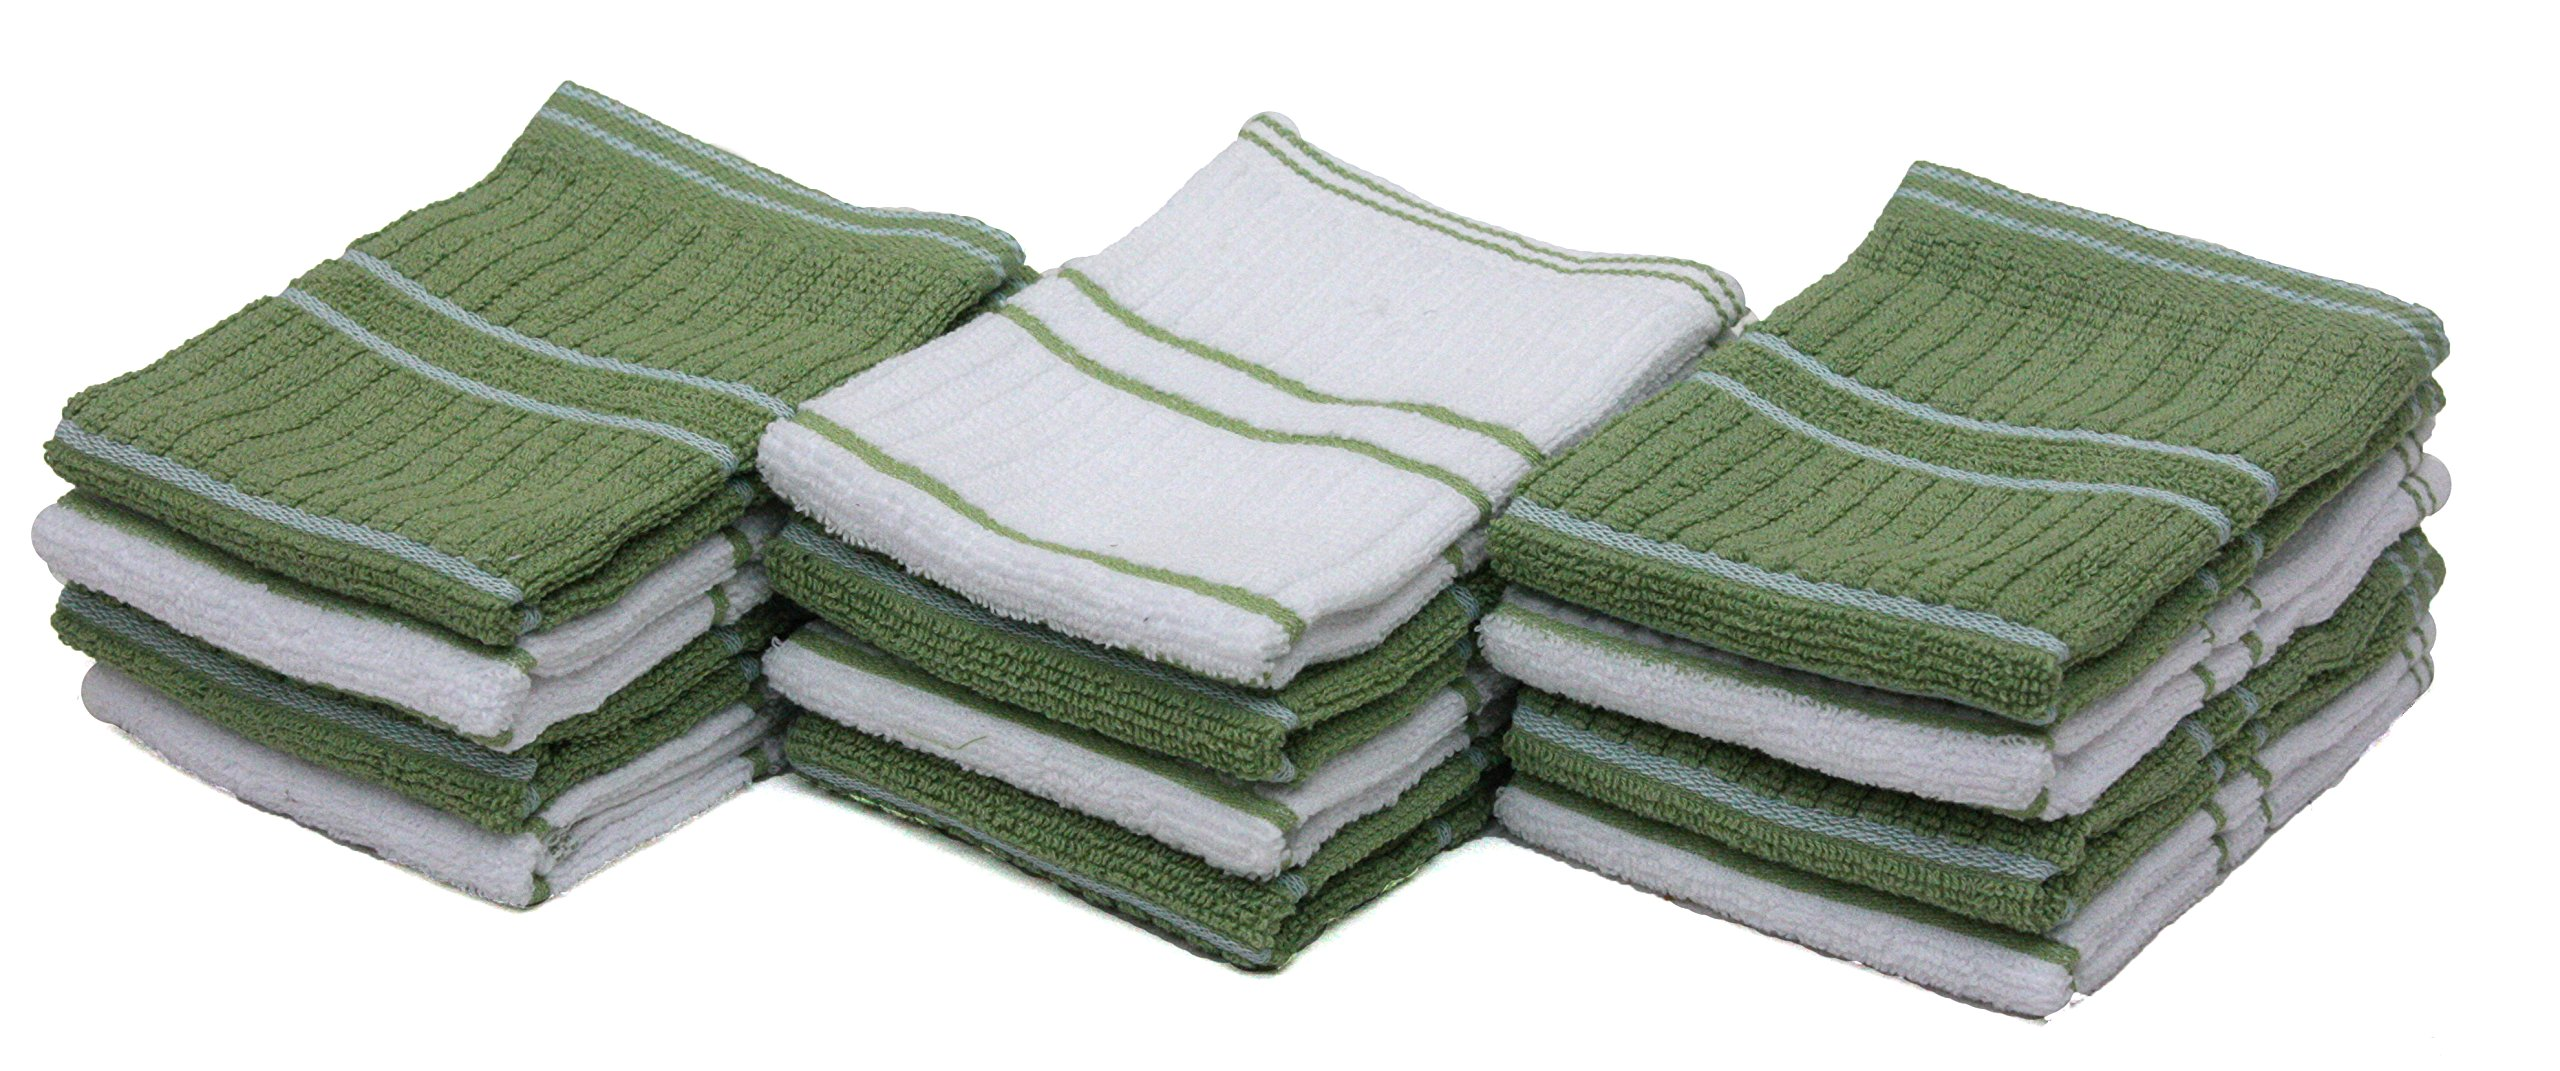 J&M Home Fashions Ribbed Terry Kitchen Dish Cloths (13x13 Set of 12 - Assorted Green & White) Absorbent & Durable for Cleaning Countertops, Dusting, or Washing Dishes